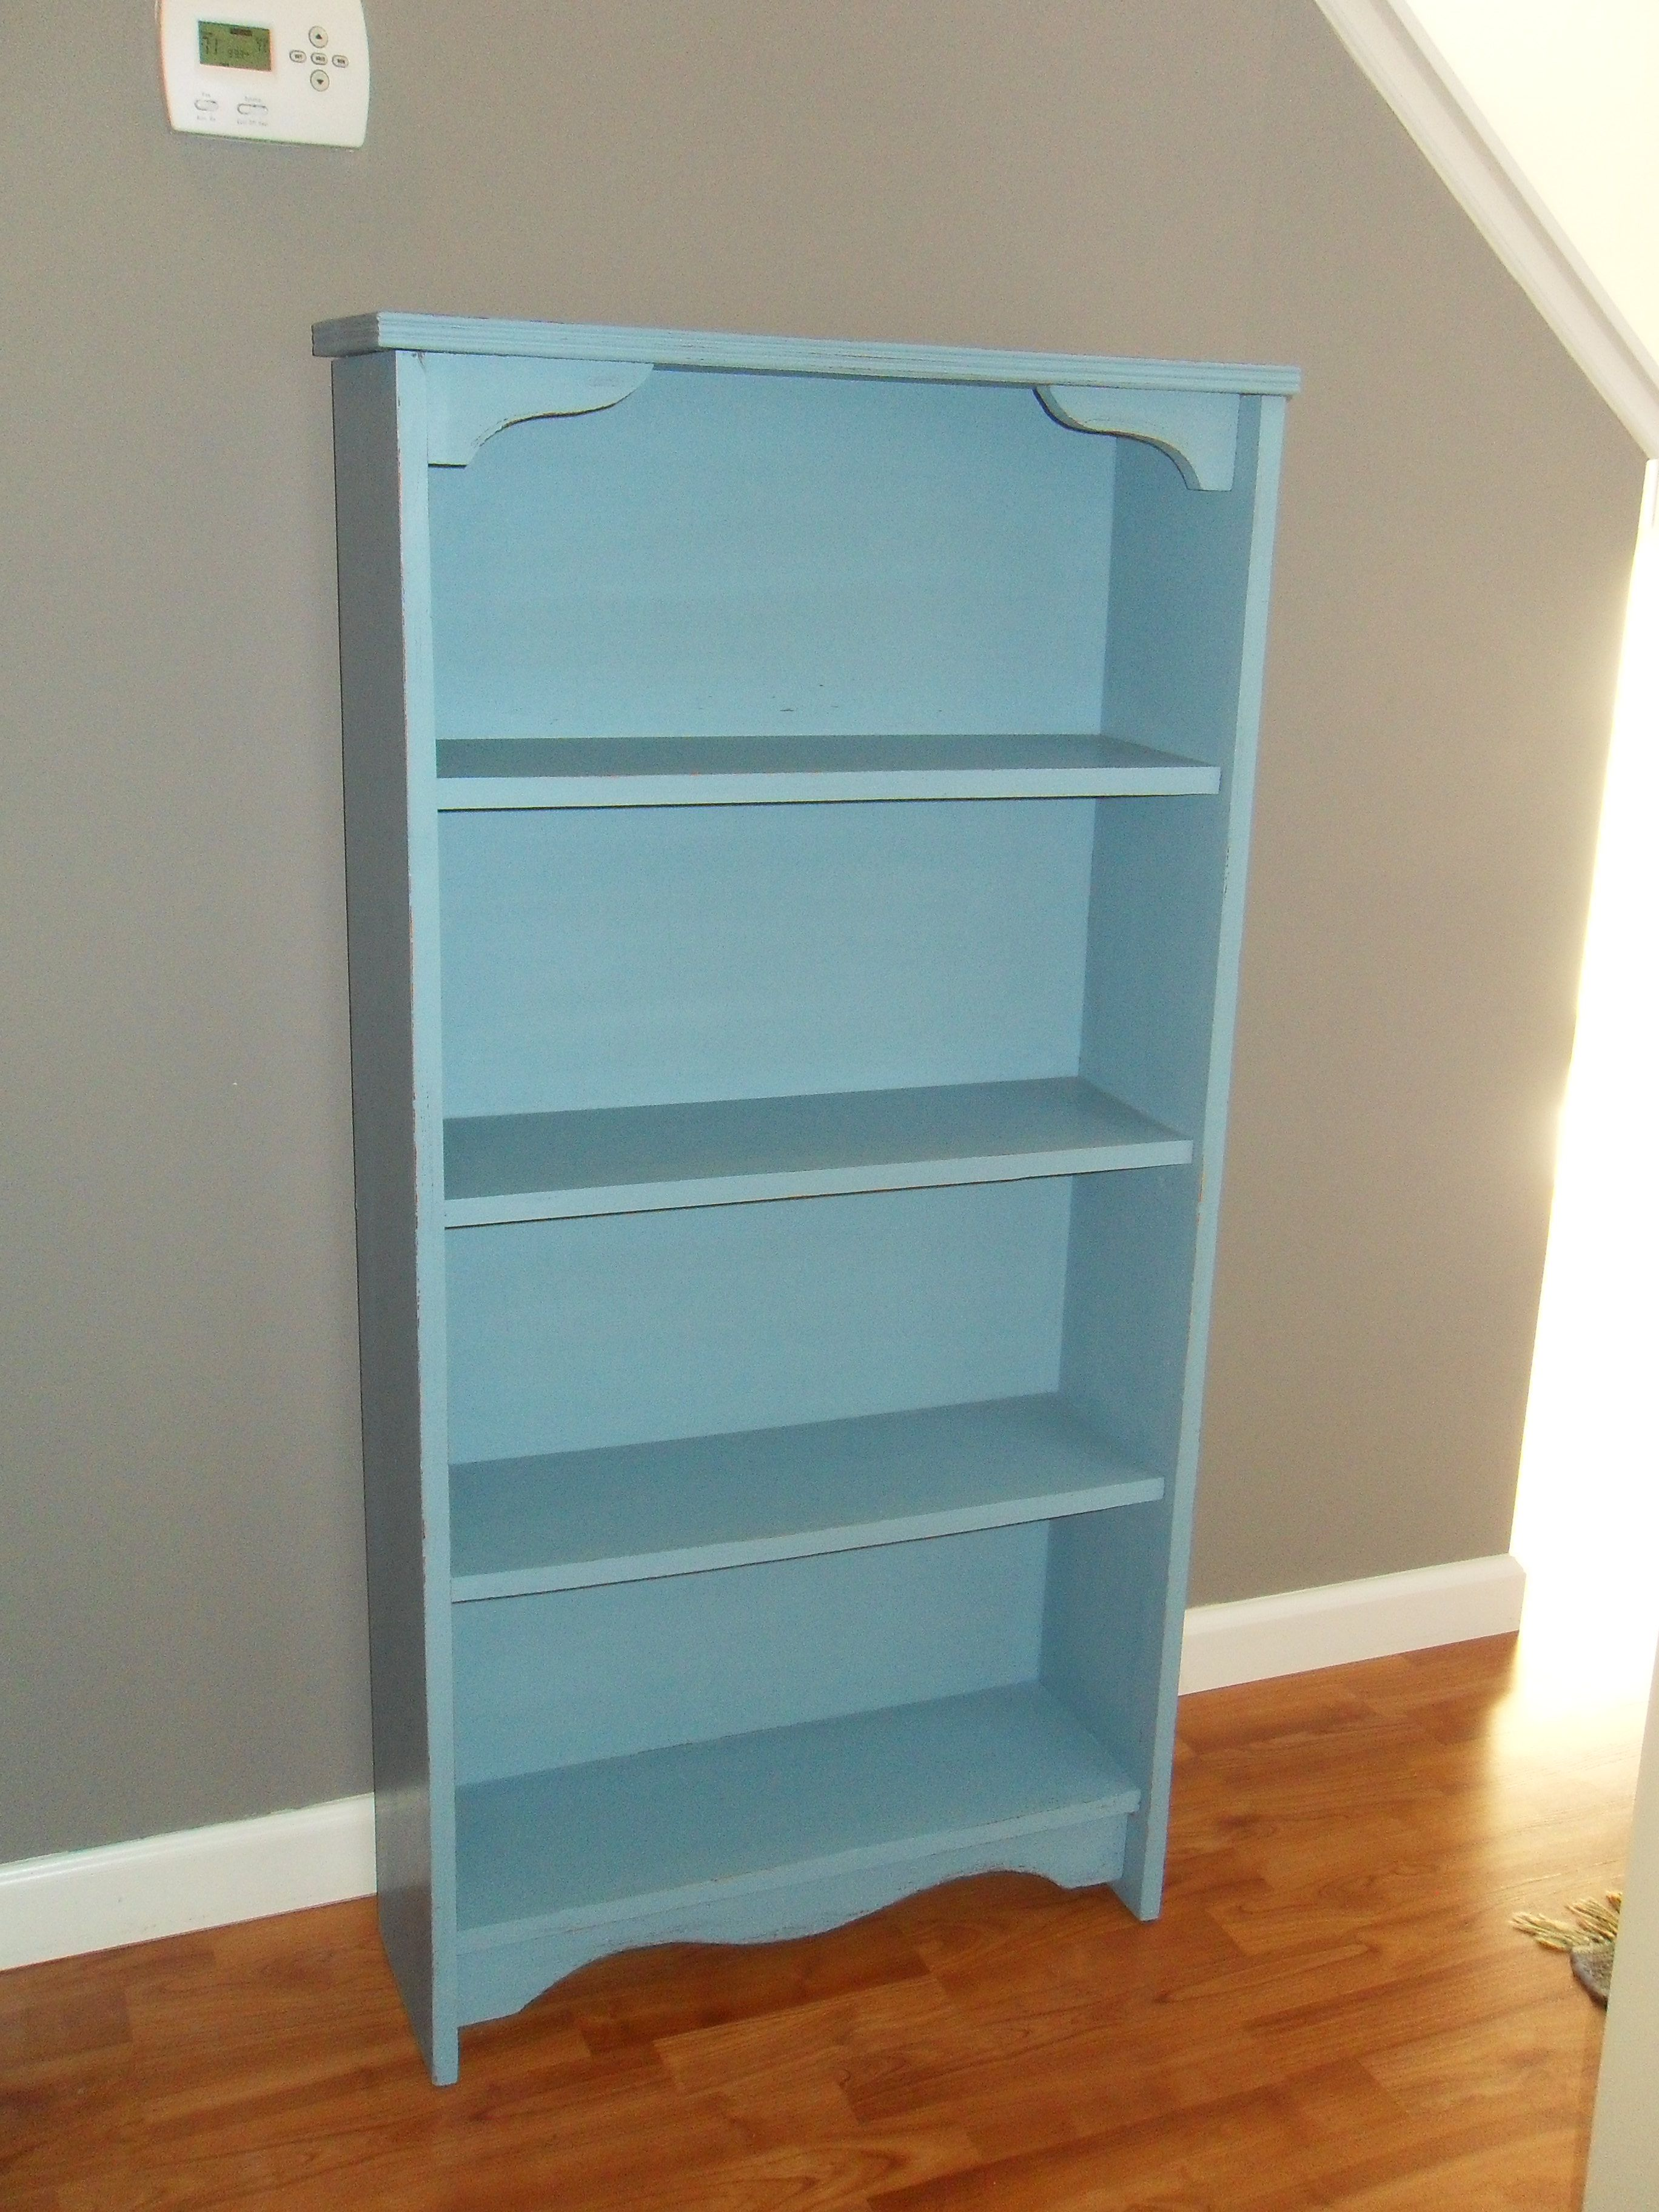 General Finishes Halcyon Blue bookcase